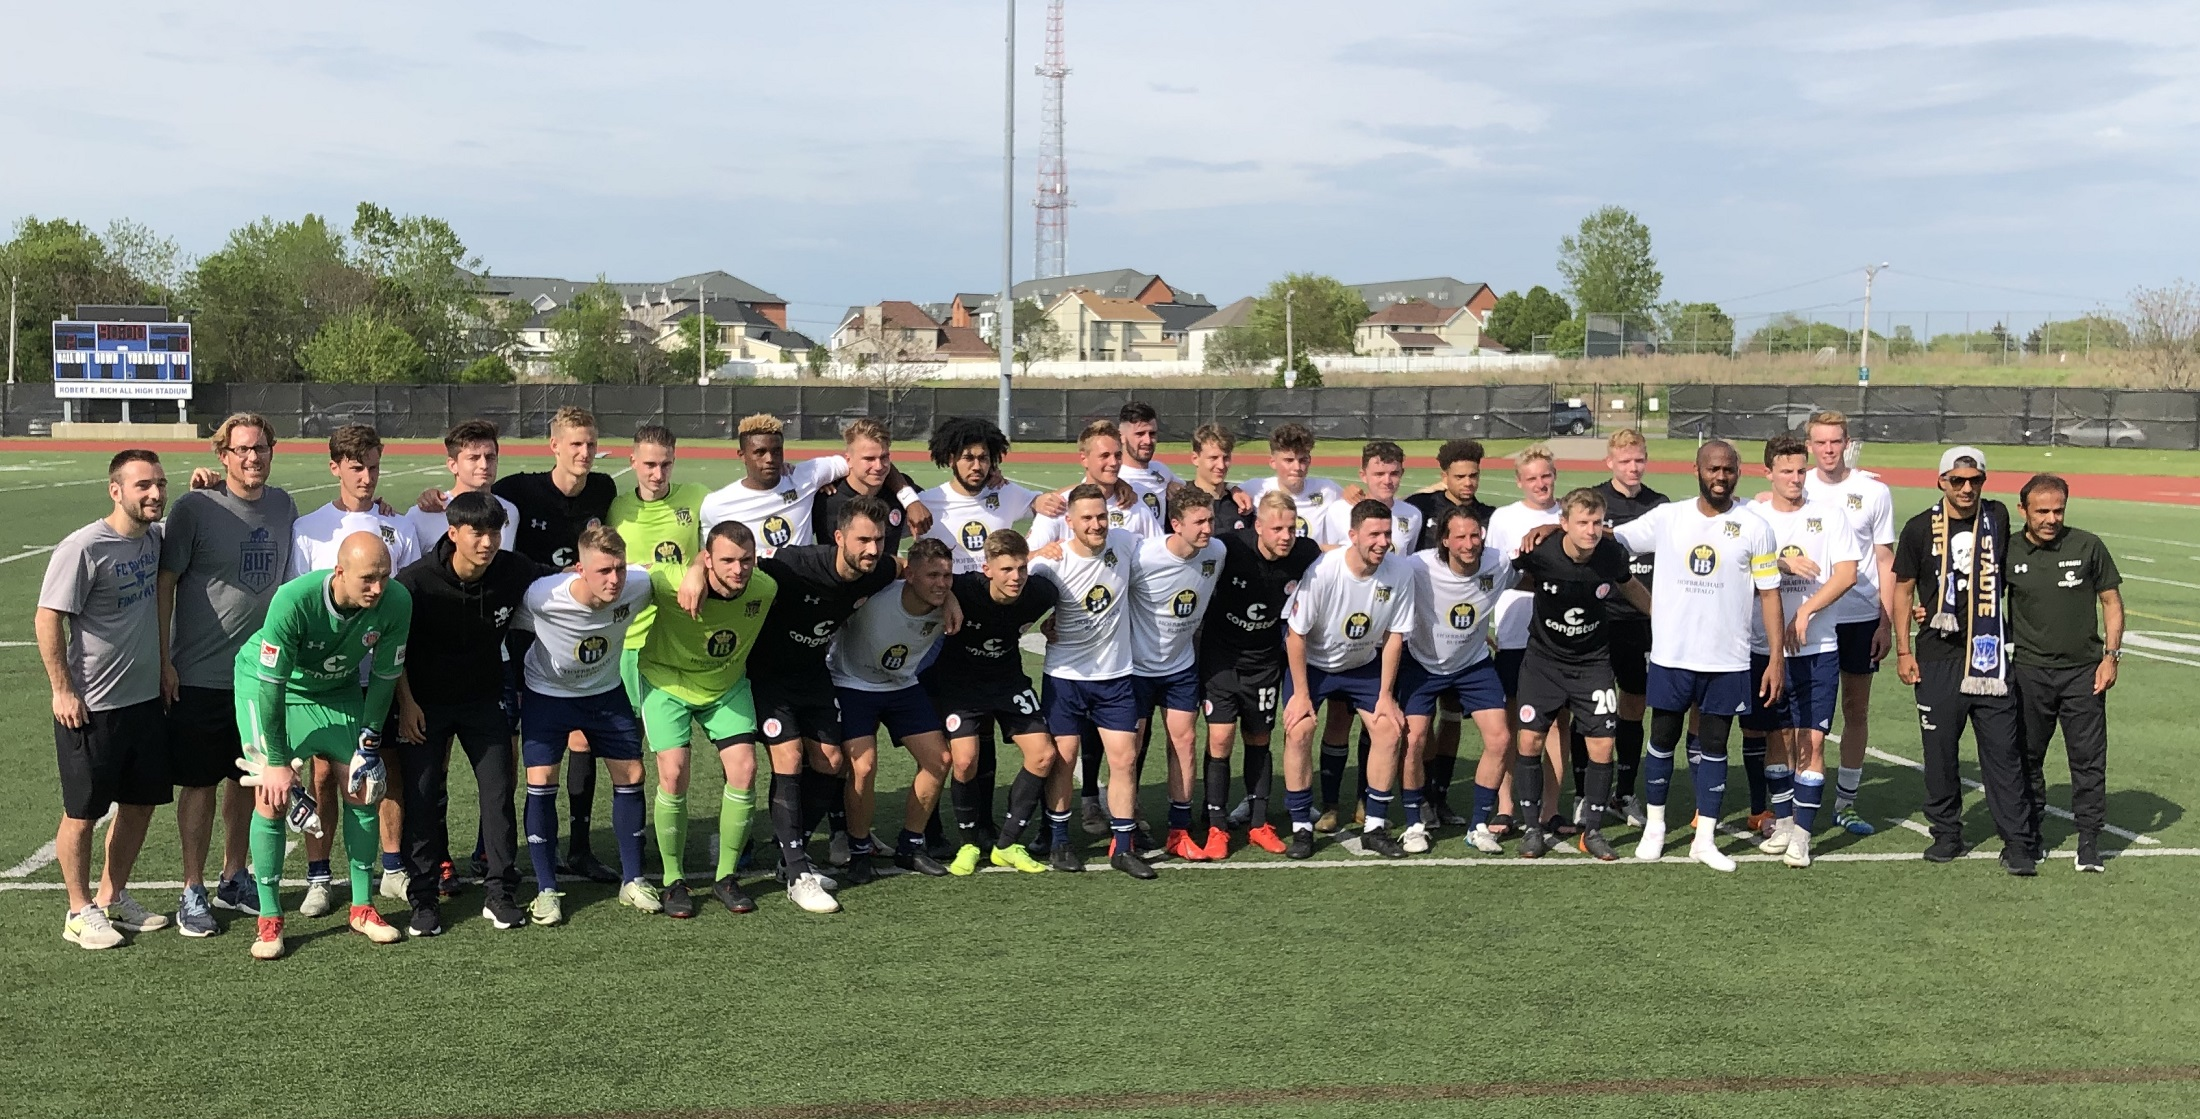 A visit from FC St. Pauli, a German professional club, was the highlight of FC Buffalo's up-and-down season. (Ben Tsujimoto/Buffalo News)